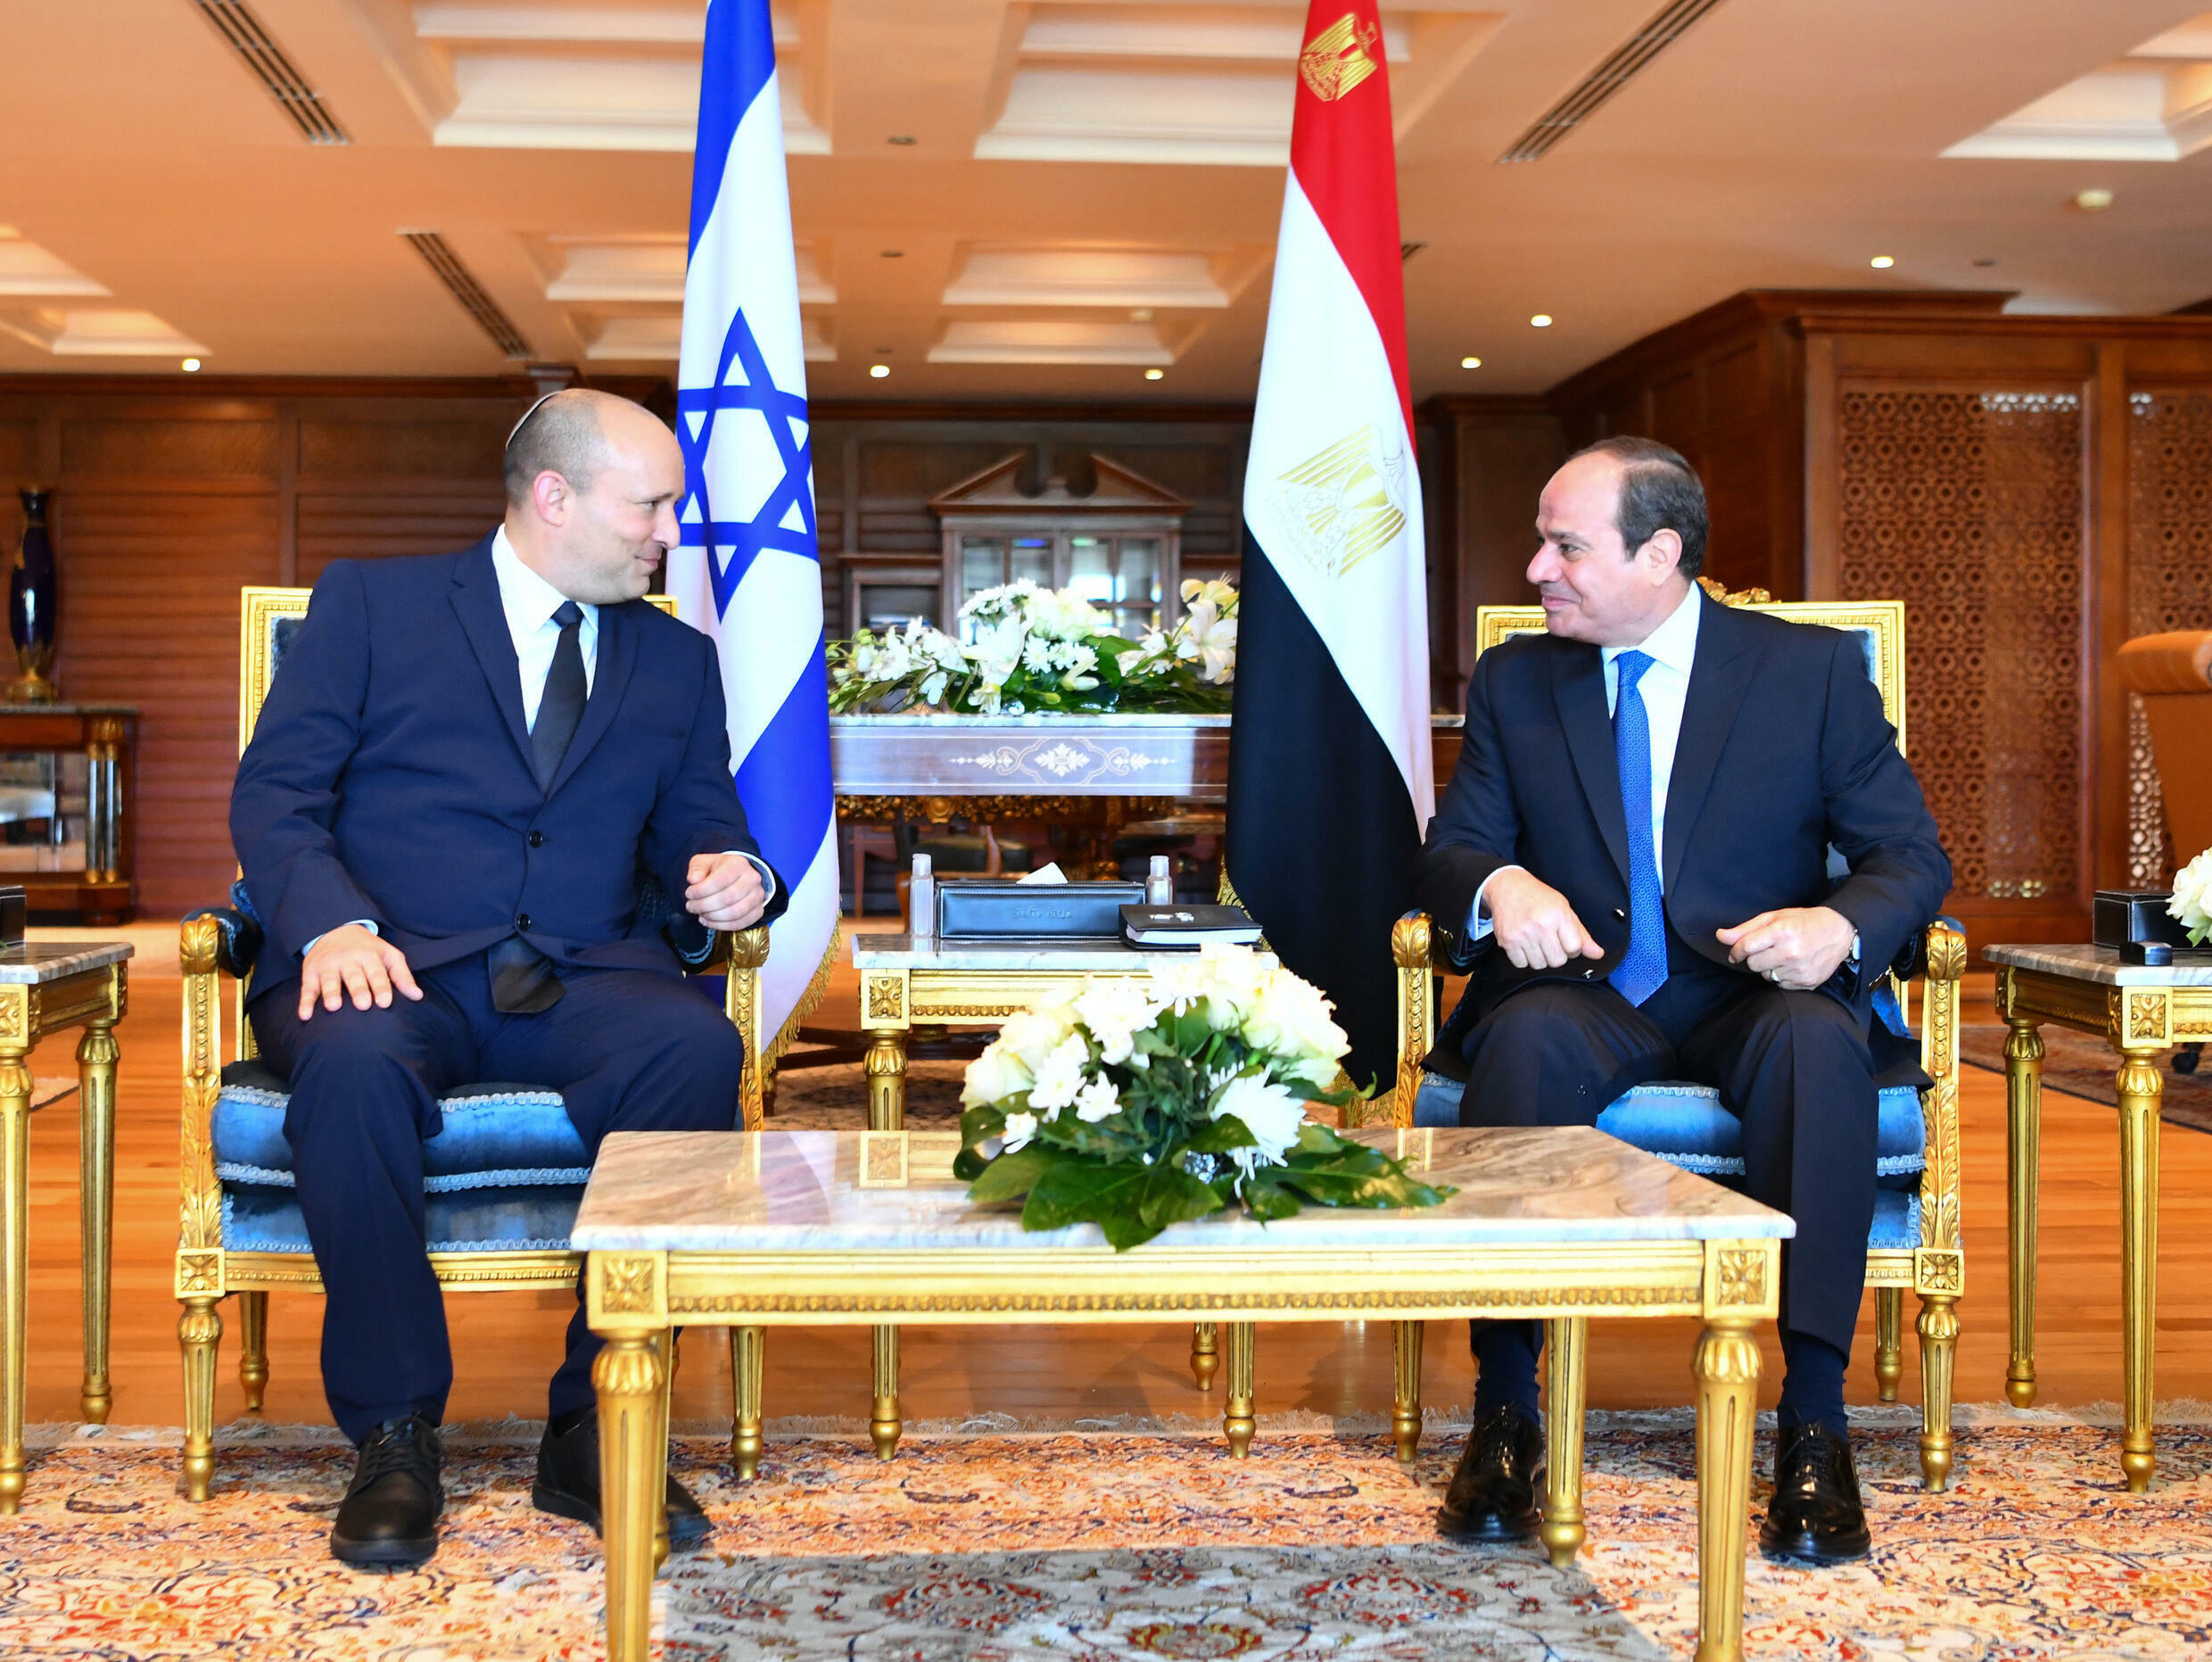 A picture released by the Egyptian presidency shows  President Abdel Fattah al-Sisi, on the right, meeting with Israeli Prime Minister Naftali Bennett in the Egyptian Red Sea resort town of Sharm El-Sheikh